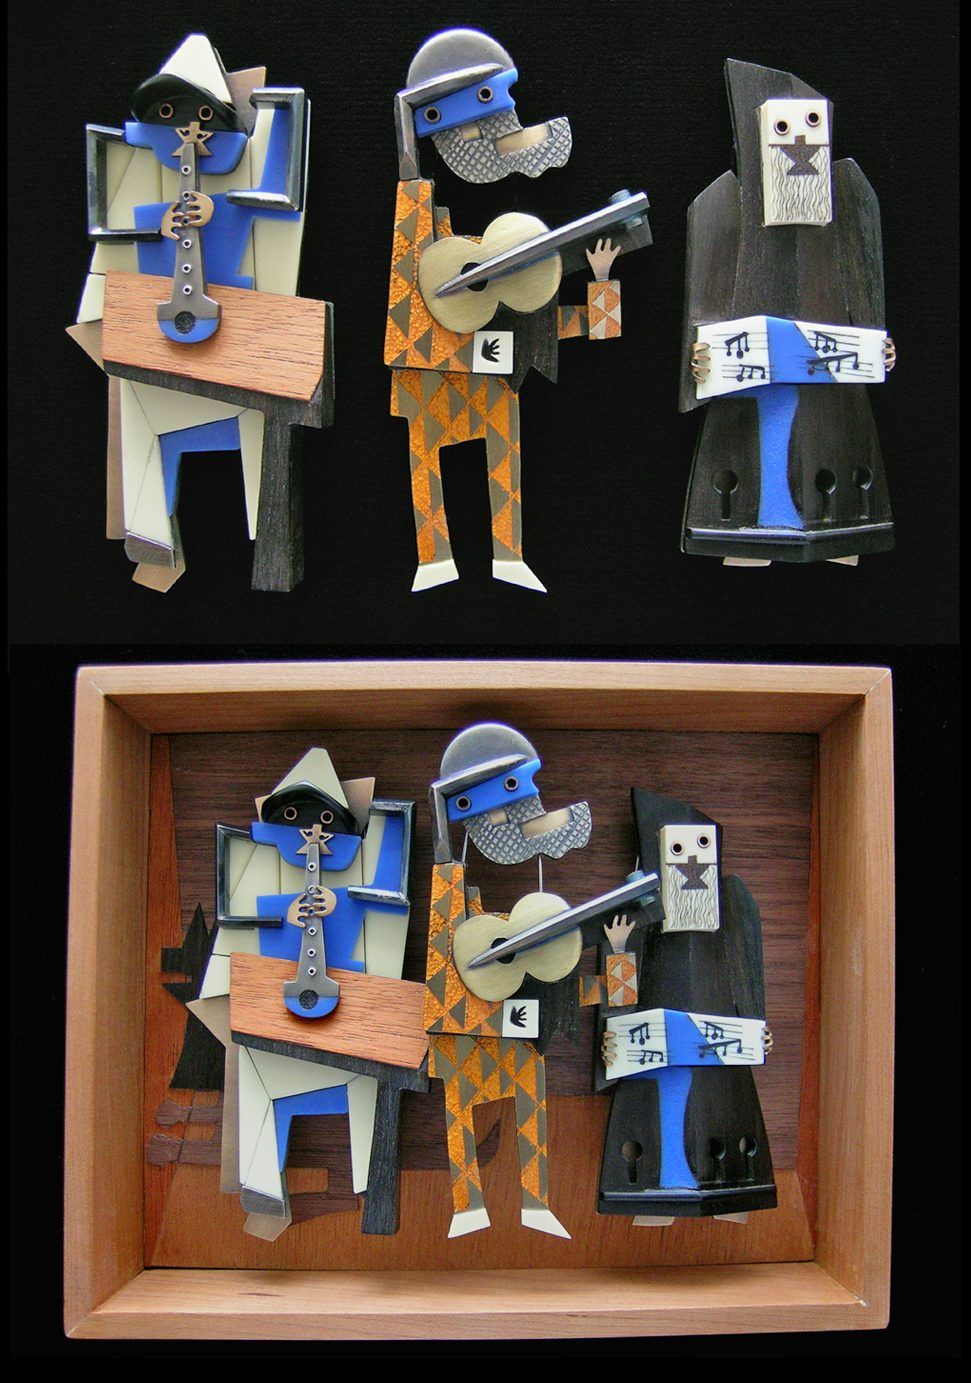 Lisa & Scott Cylinder, Trio Box, broches, 2011. Foto met dank aan Lisa & Scott Cylinder©